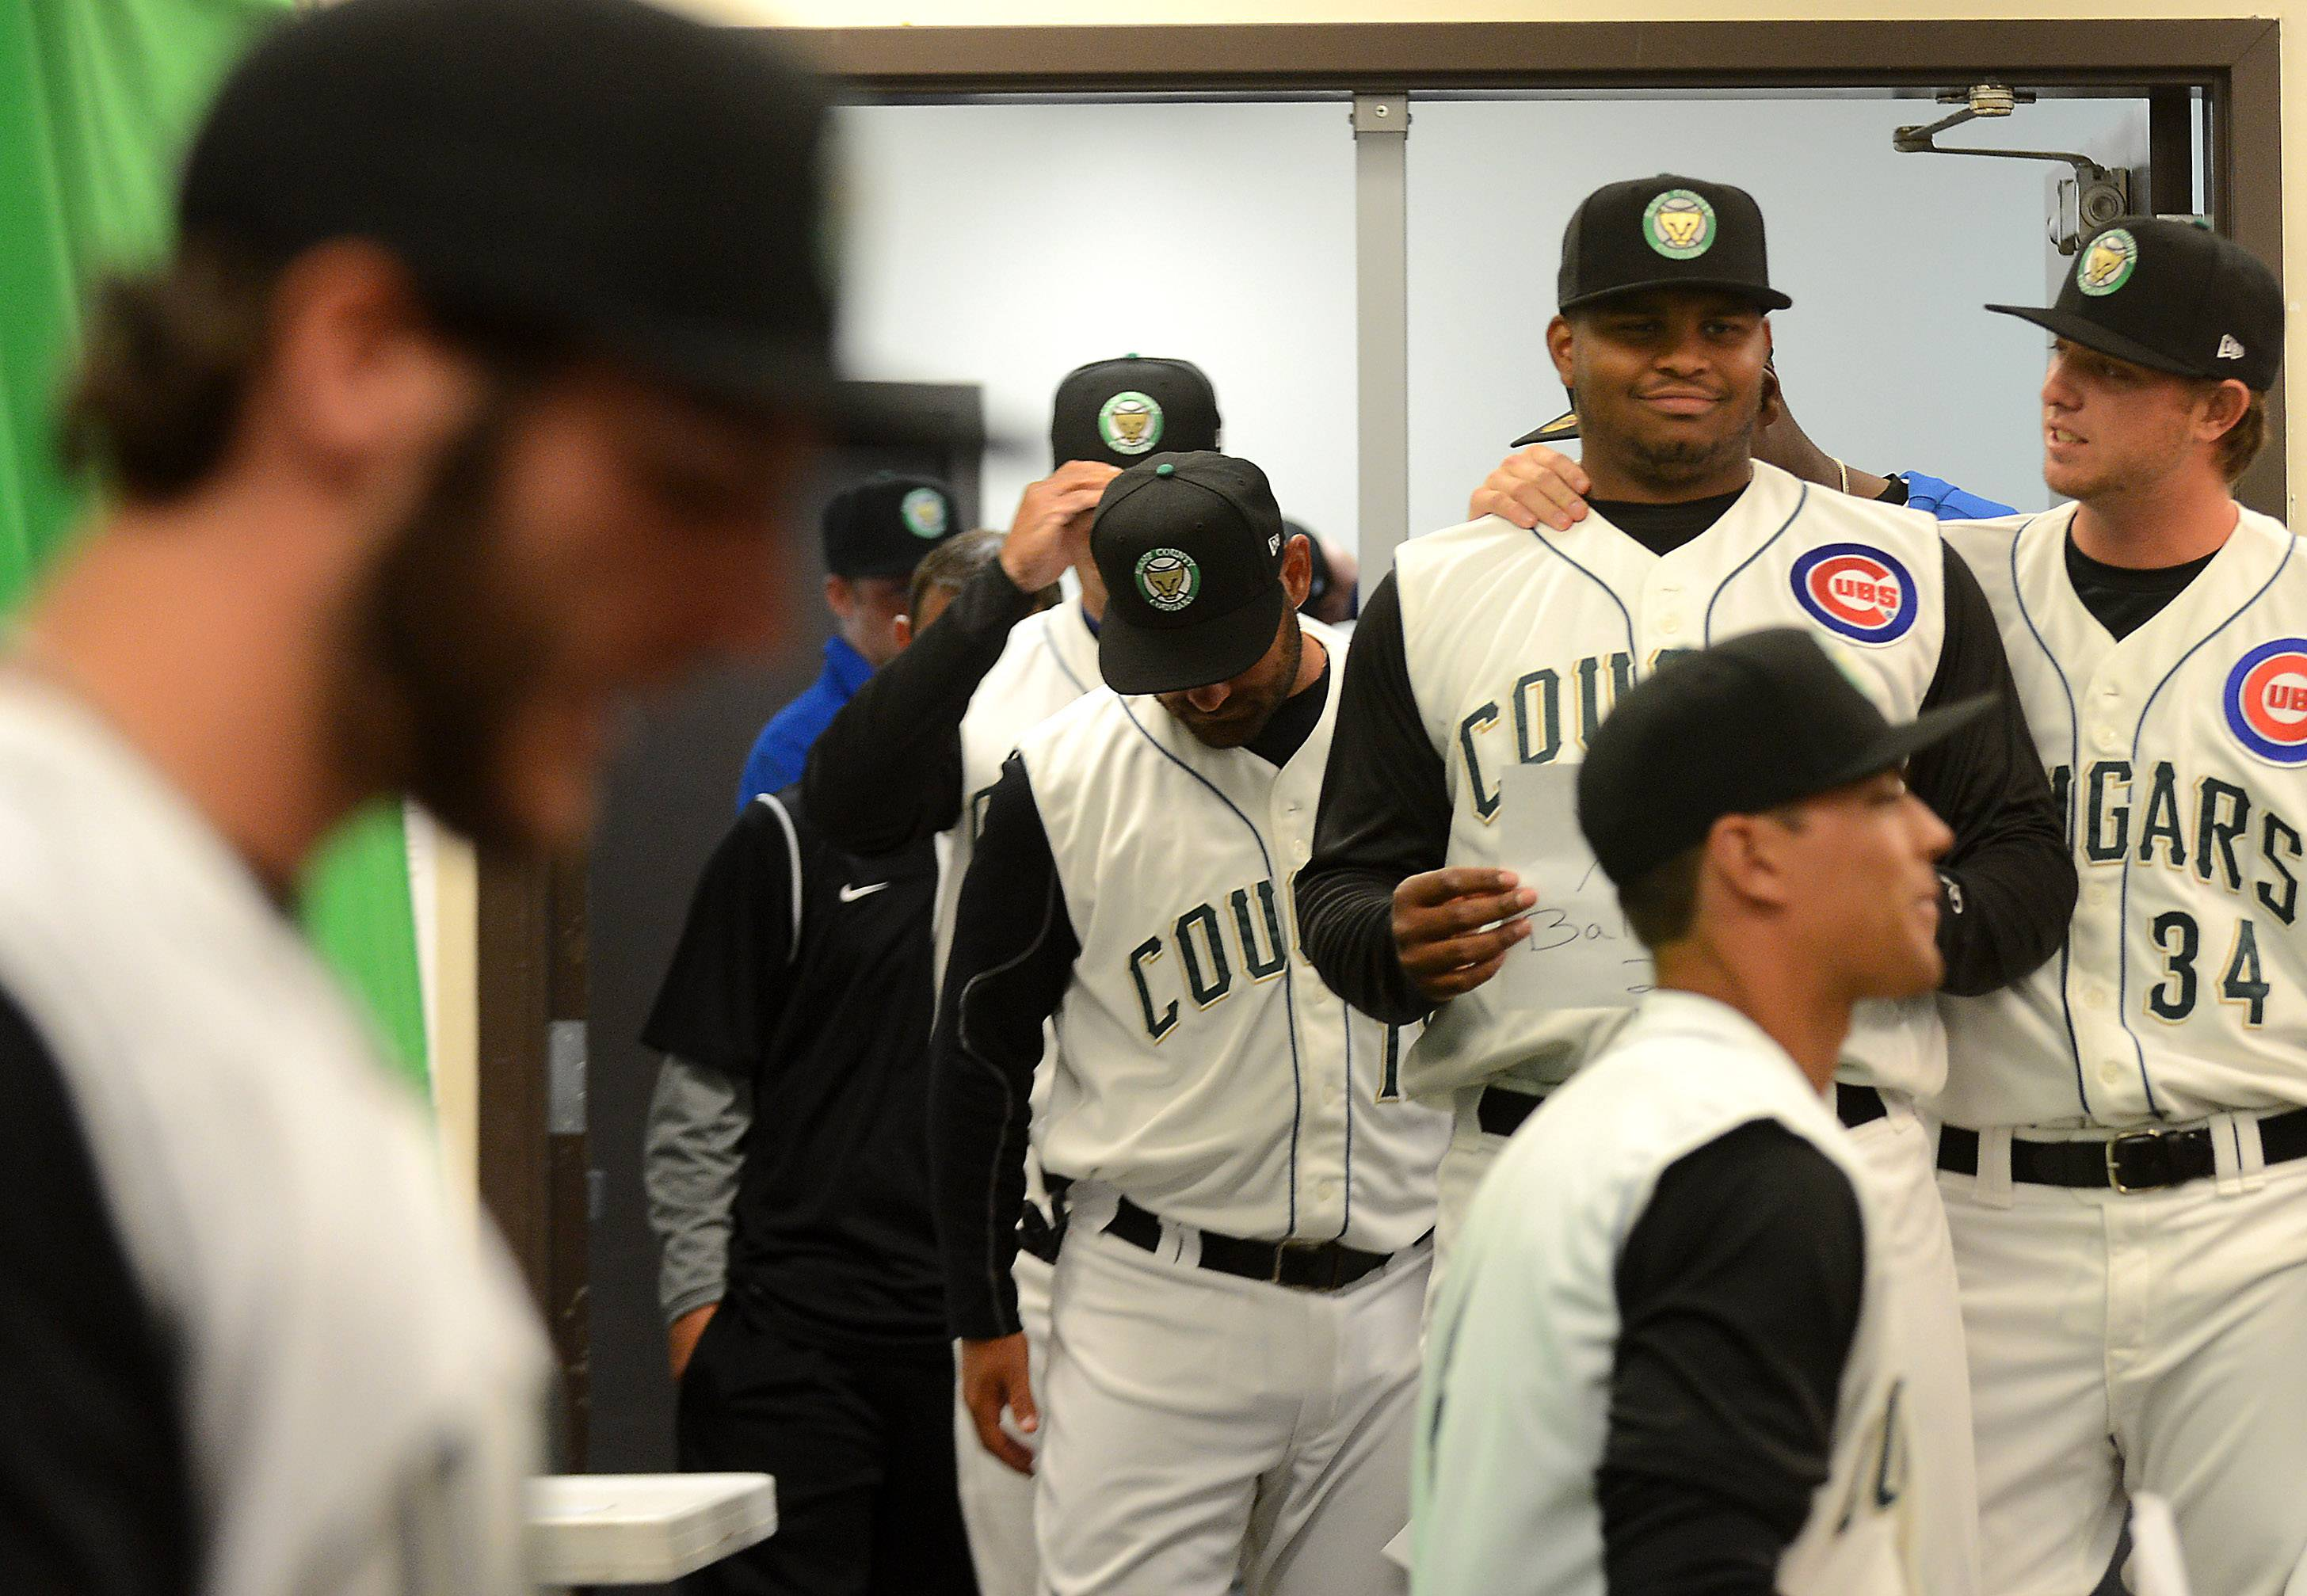 Paul Blackburn, right, puts an arm around a bemused Yasiel Balaguert as they wait to have their picture taken during Media Day for the Kane County Cougars Tuesday in Geneva.